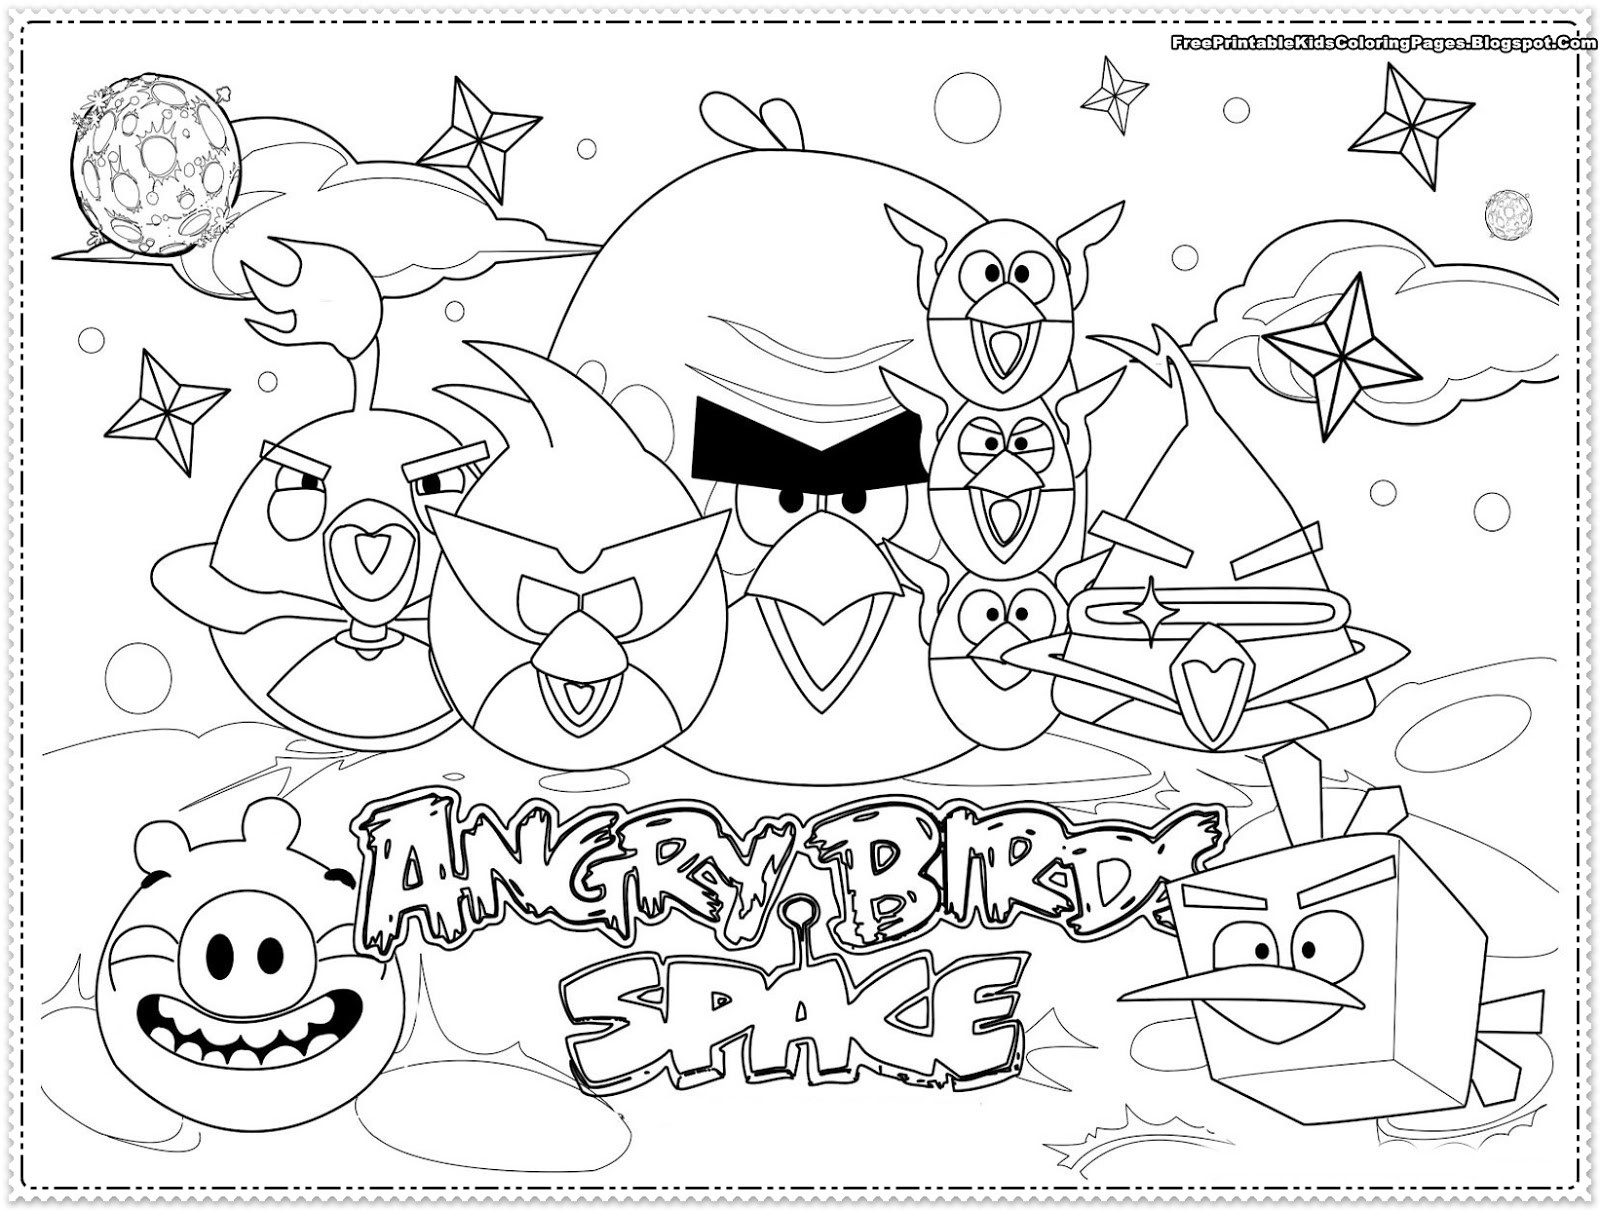 Best ideas about Angry Birds Coloring Pages For Kids Printable . Save or Pin Angry Birds kids Coloring Pages Free Printable Kids Now.